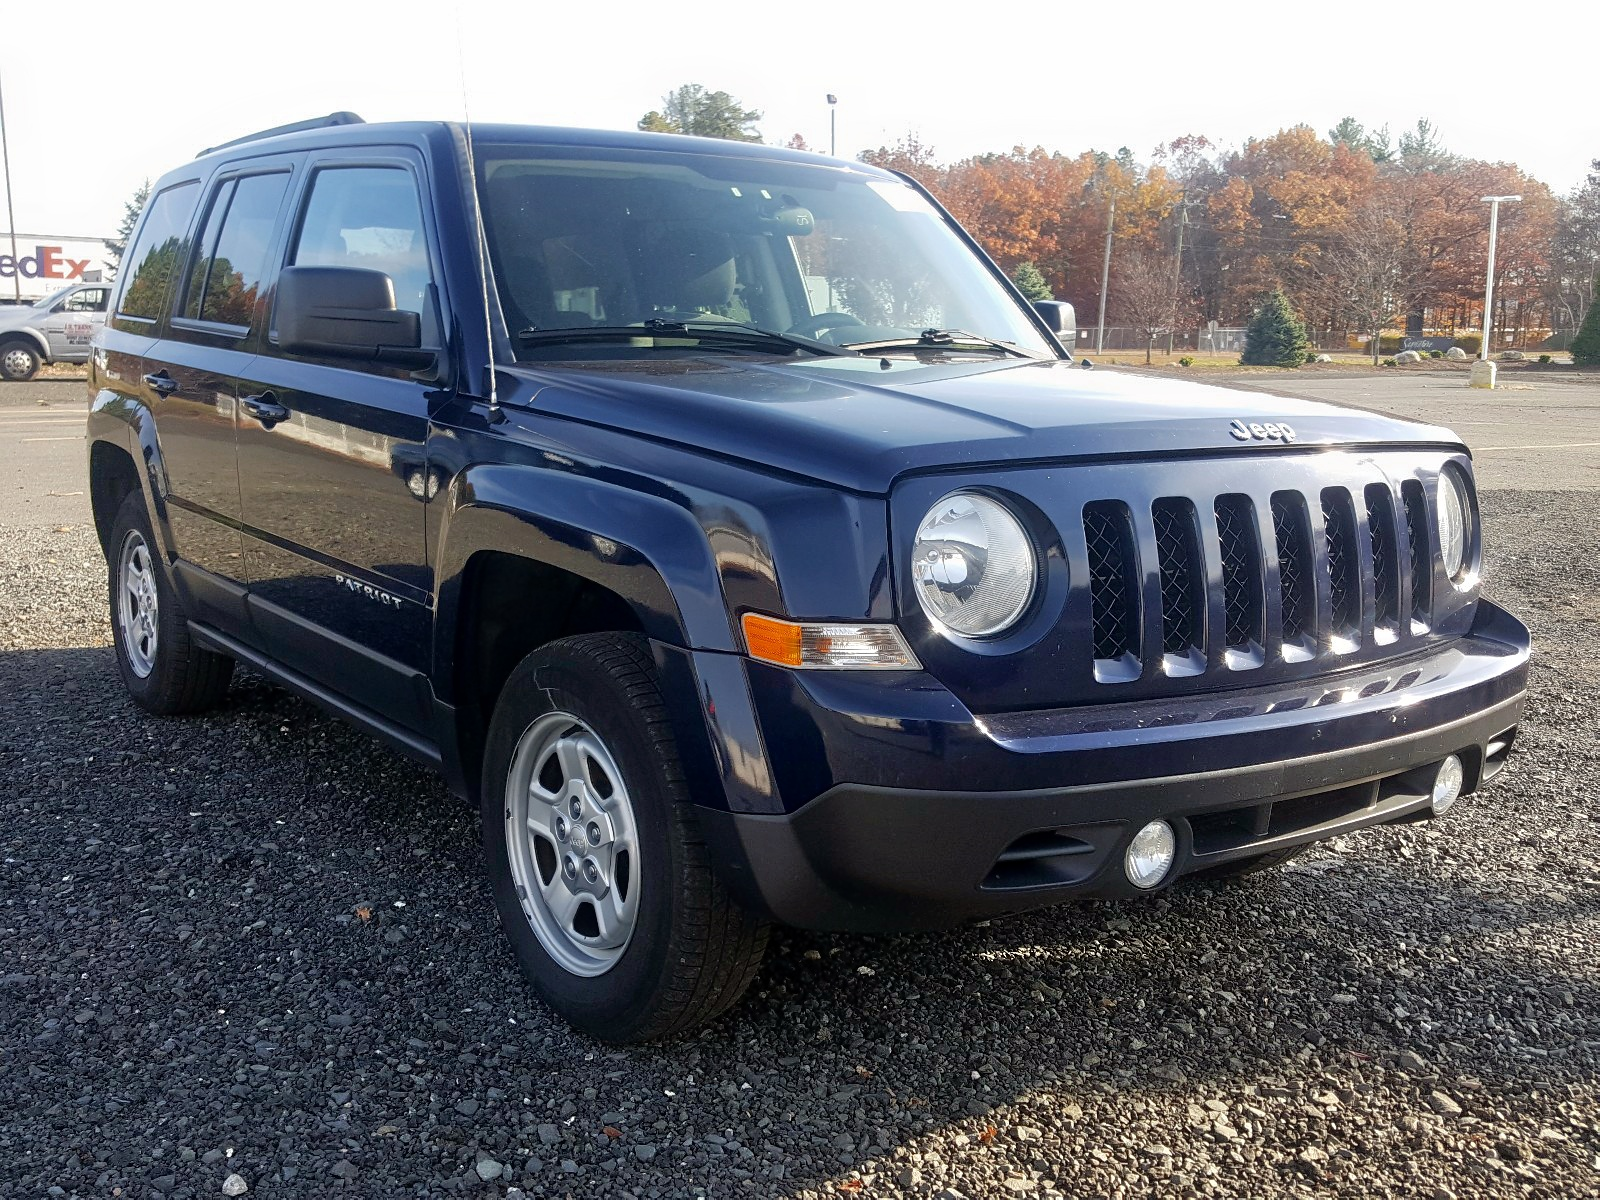 2015 Jeep Patriot Sp 2.4L Left View